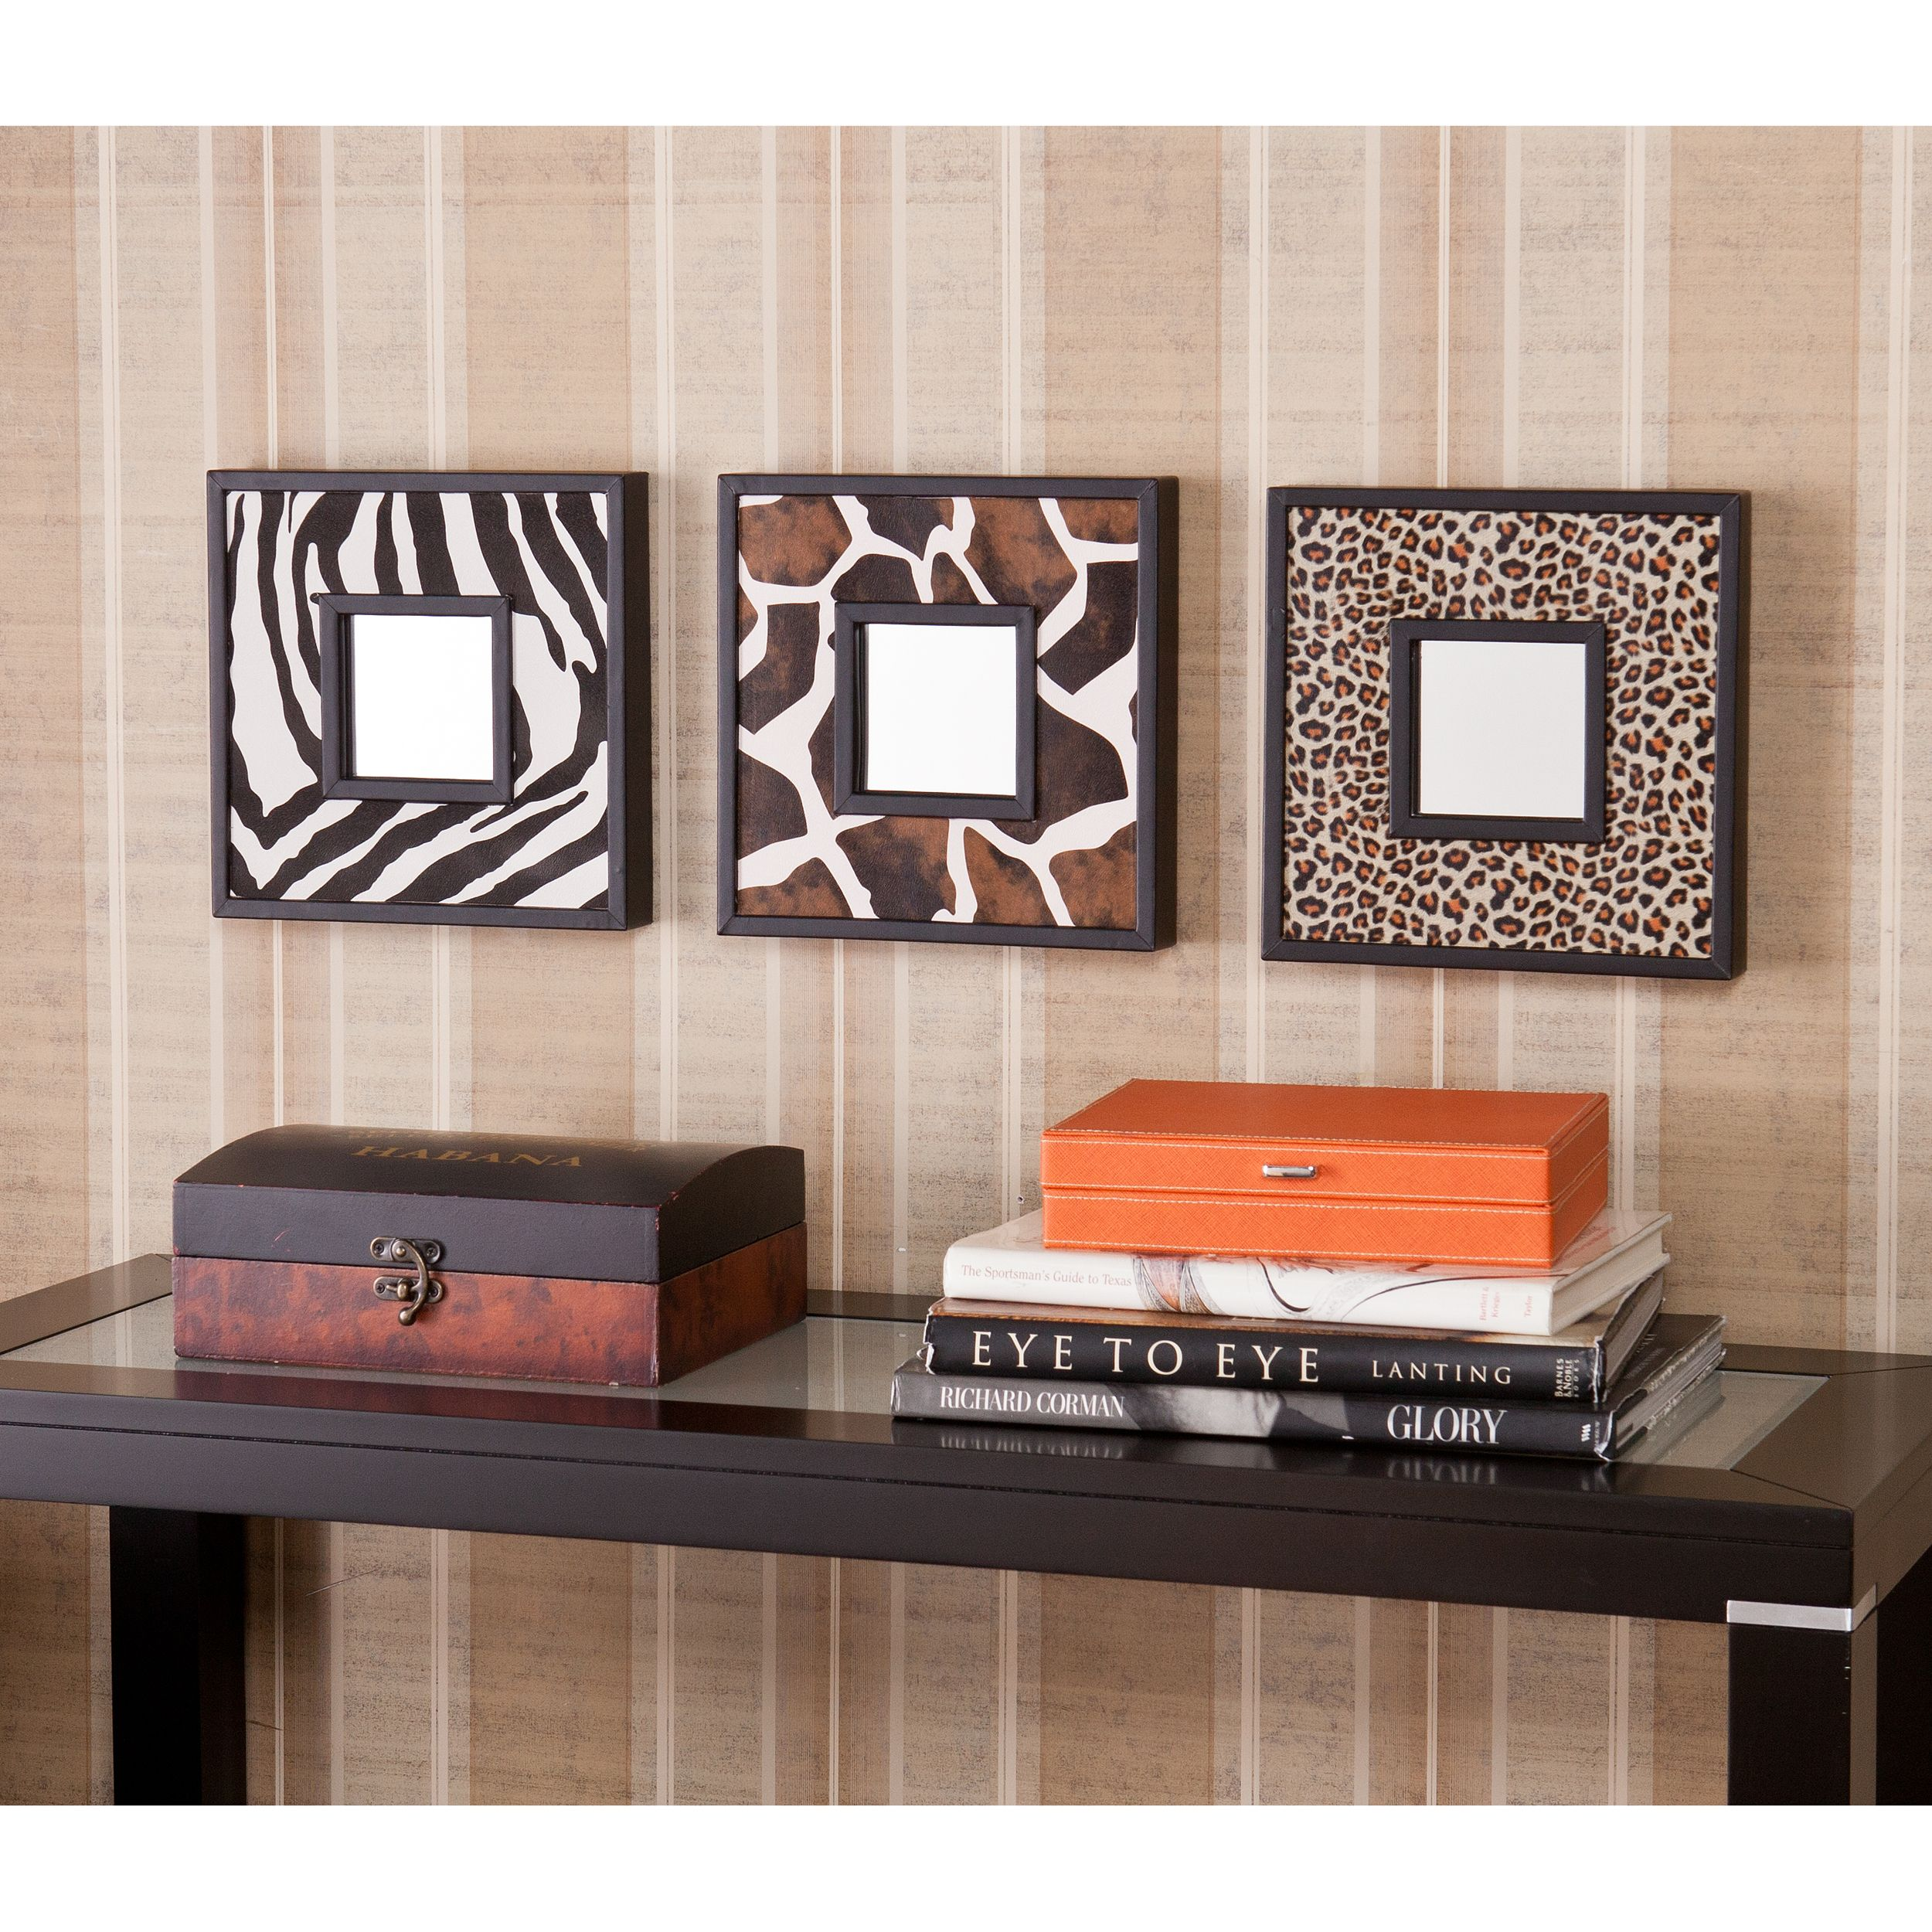 Upton home abana animal print decorative wall mirror 3 pc set upton home abana animal print decorative wall mirror 3 pc set overstock shopping amipublicfo Choice Image